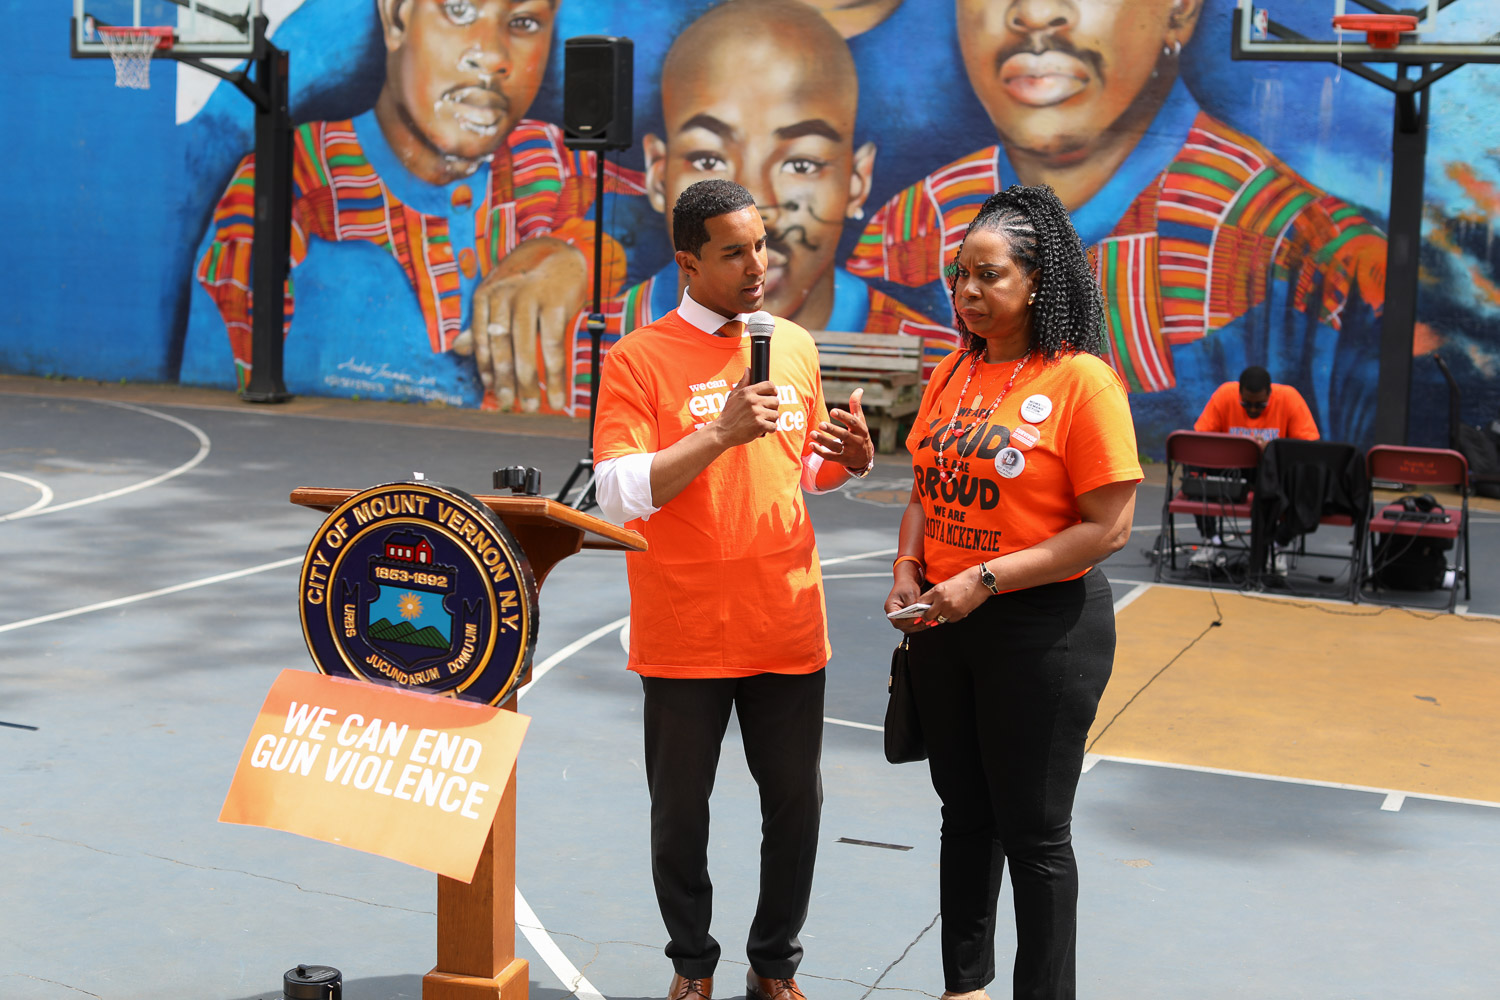 Mayor Richard Thomas and Nadine McKenzie Discuss Gun Violence At The Moms Demand Action for Gun Sense in America, Gun Violence Awareness Week at Heavy D Memorial Park in Mount Vernon June 9, 2019. Photography by Tyrone Z. McCants / Zire Photography